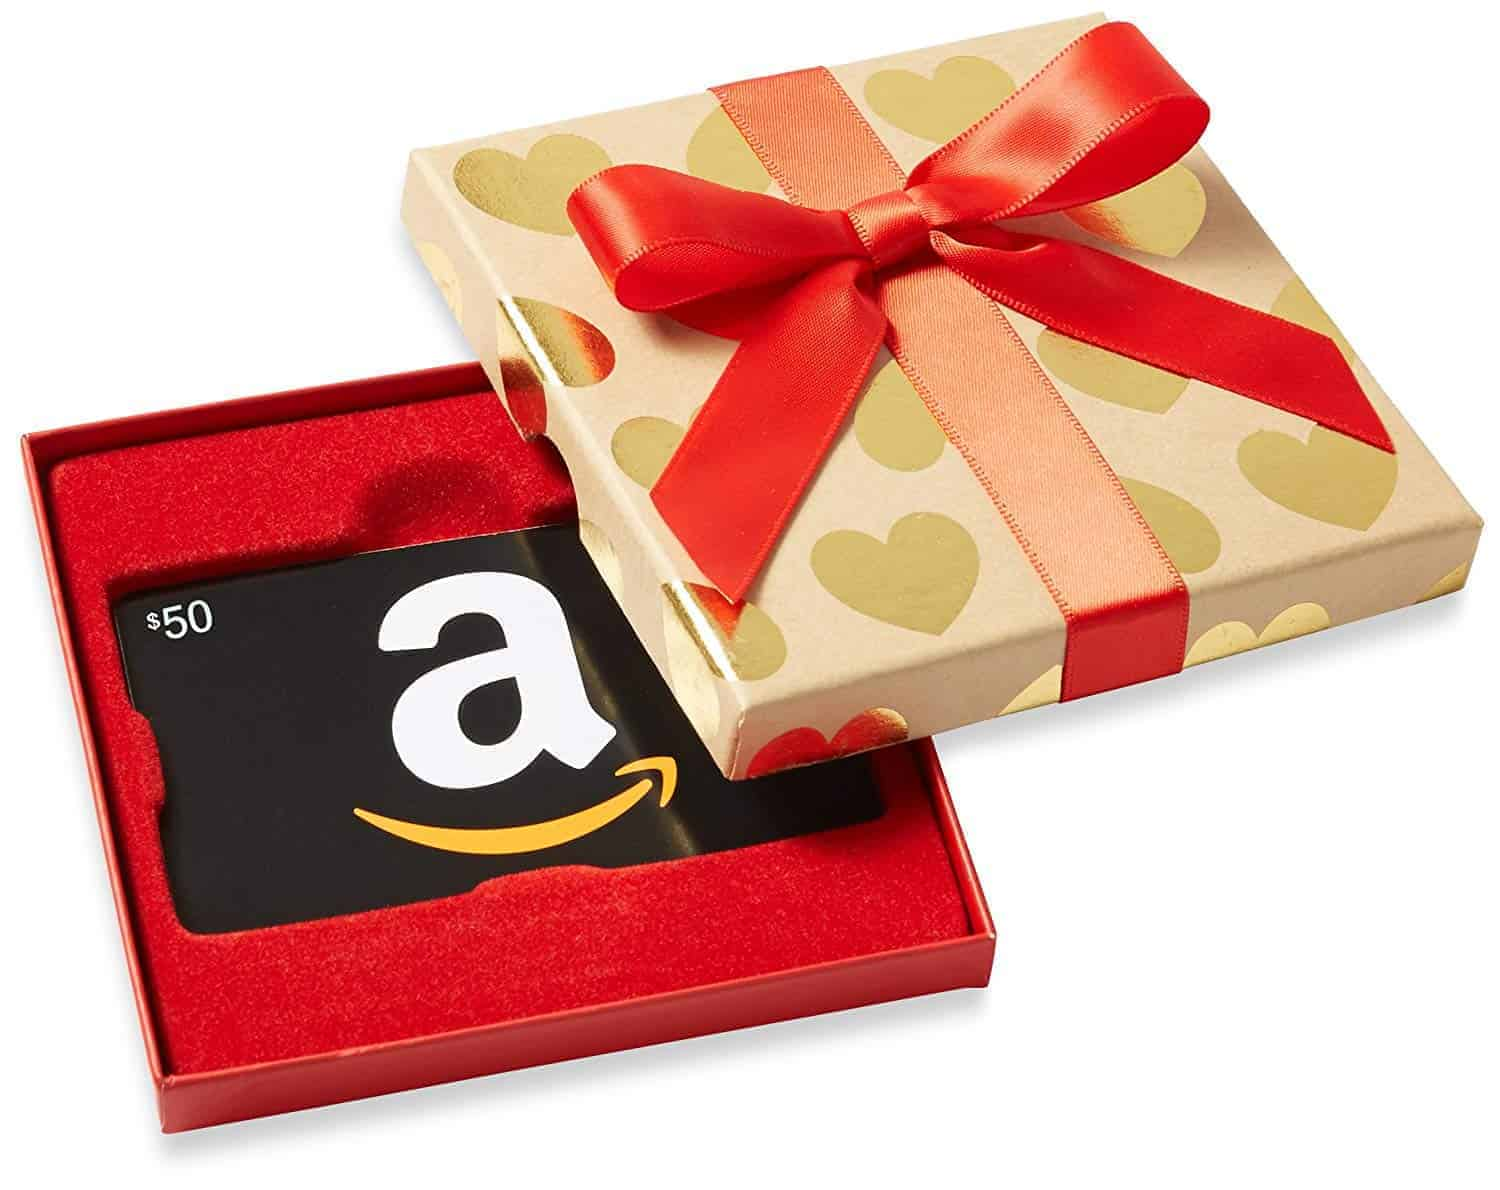 amazon gift card festive box | kimschob.com